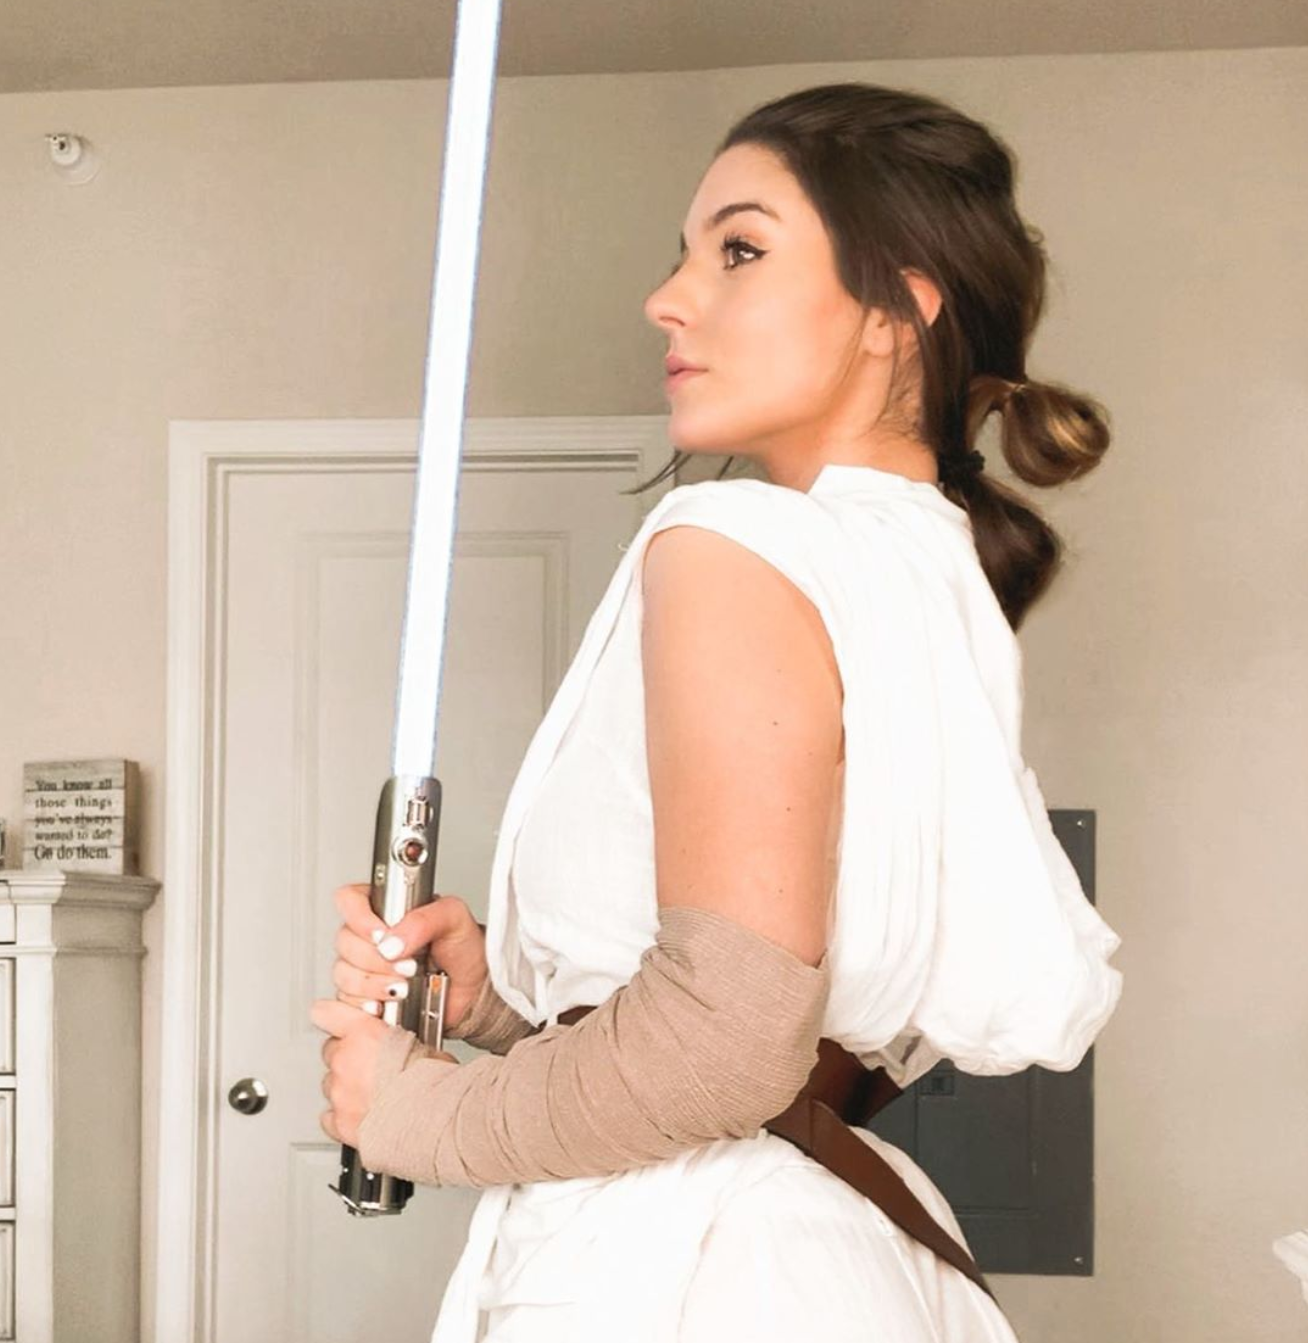 A woman holds a light saber and tied her hair in three buns as part of her costume.